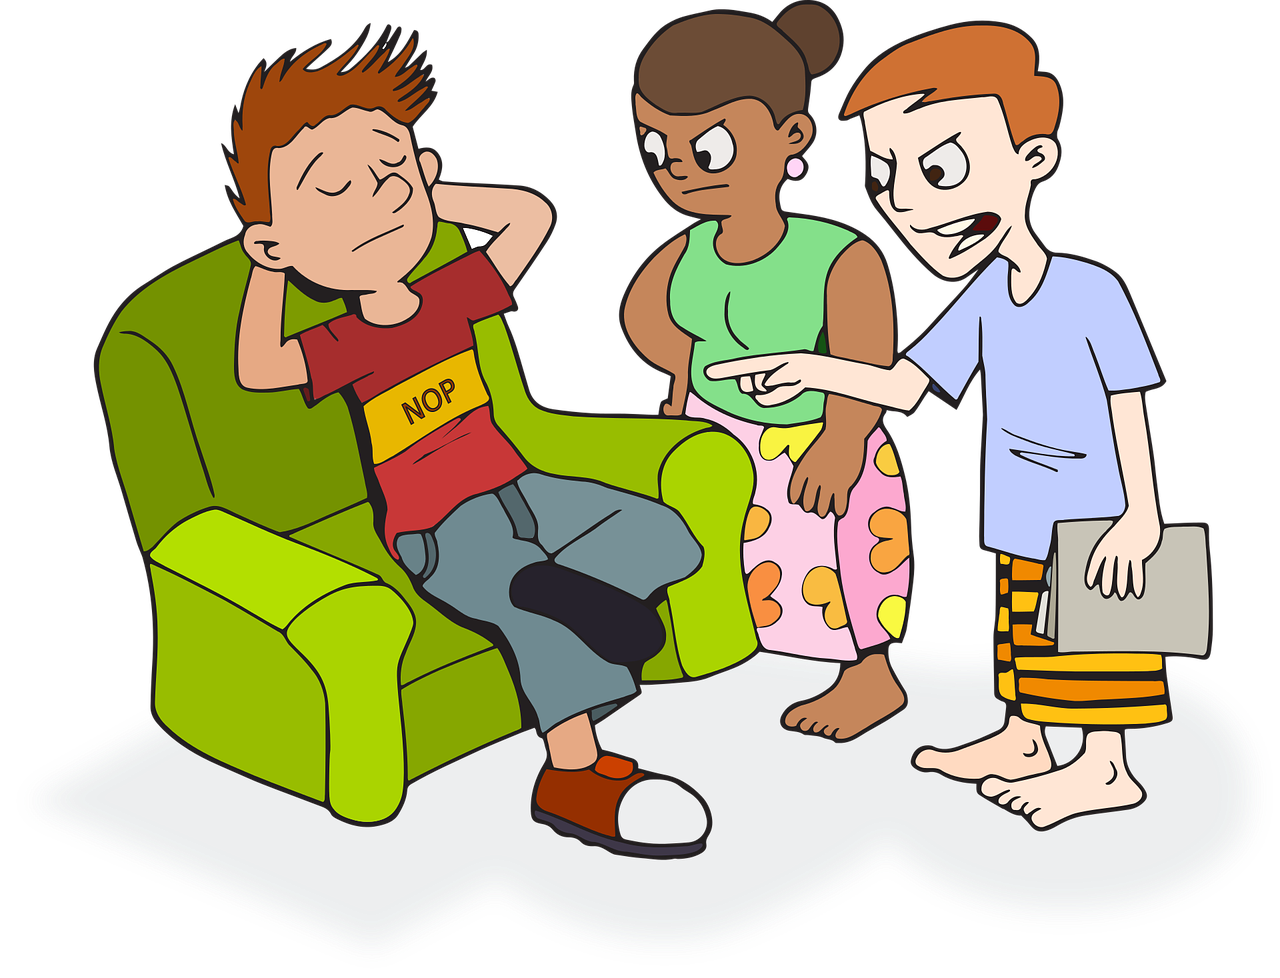 Conversation clipart subordinate. The myth of laziness